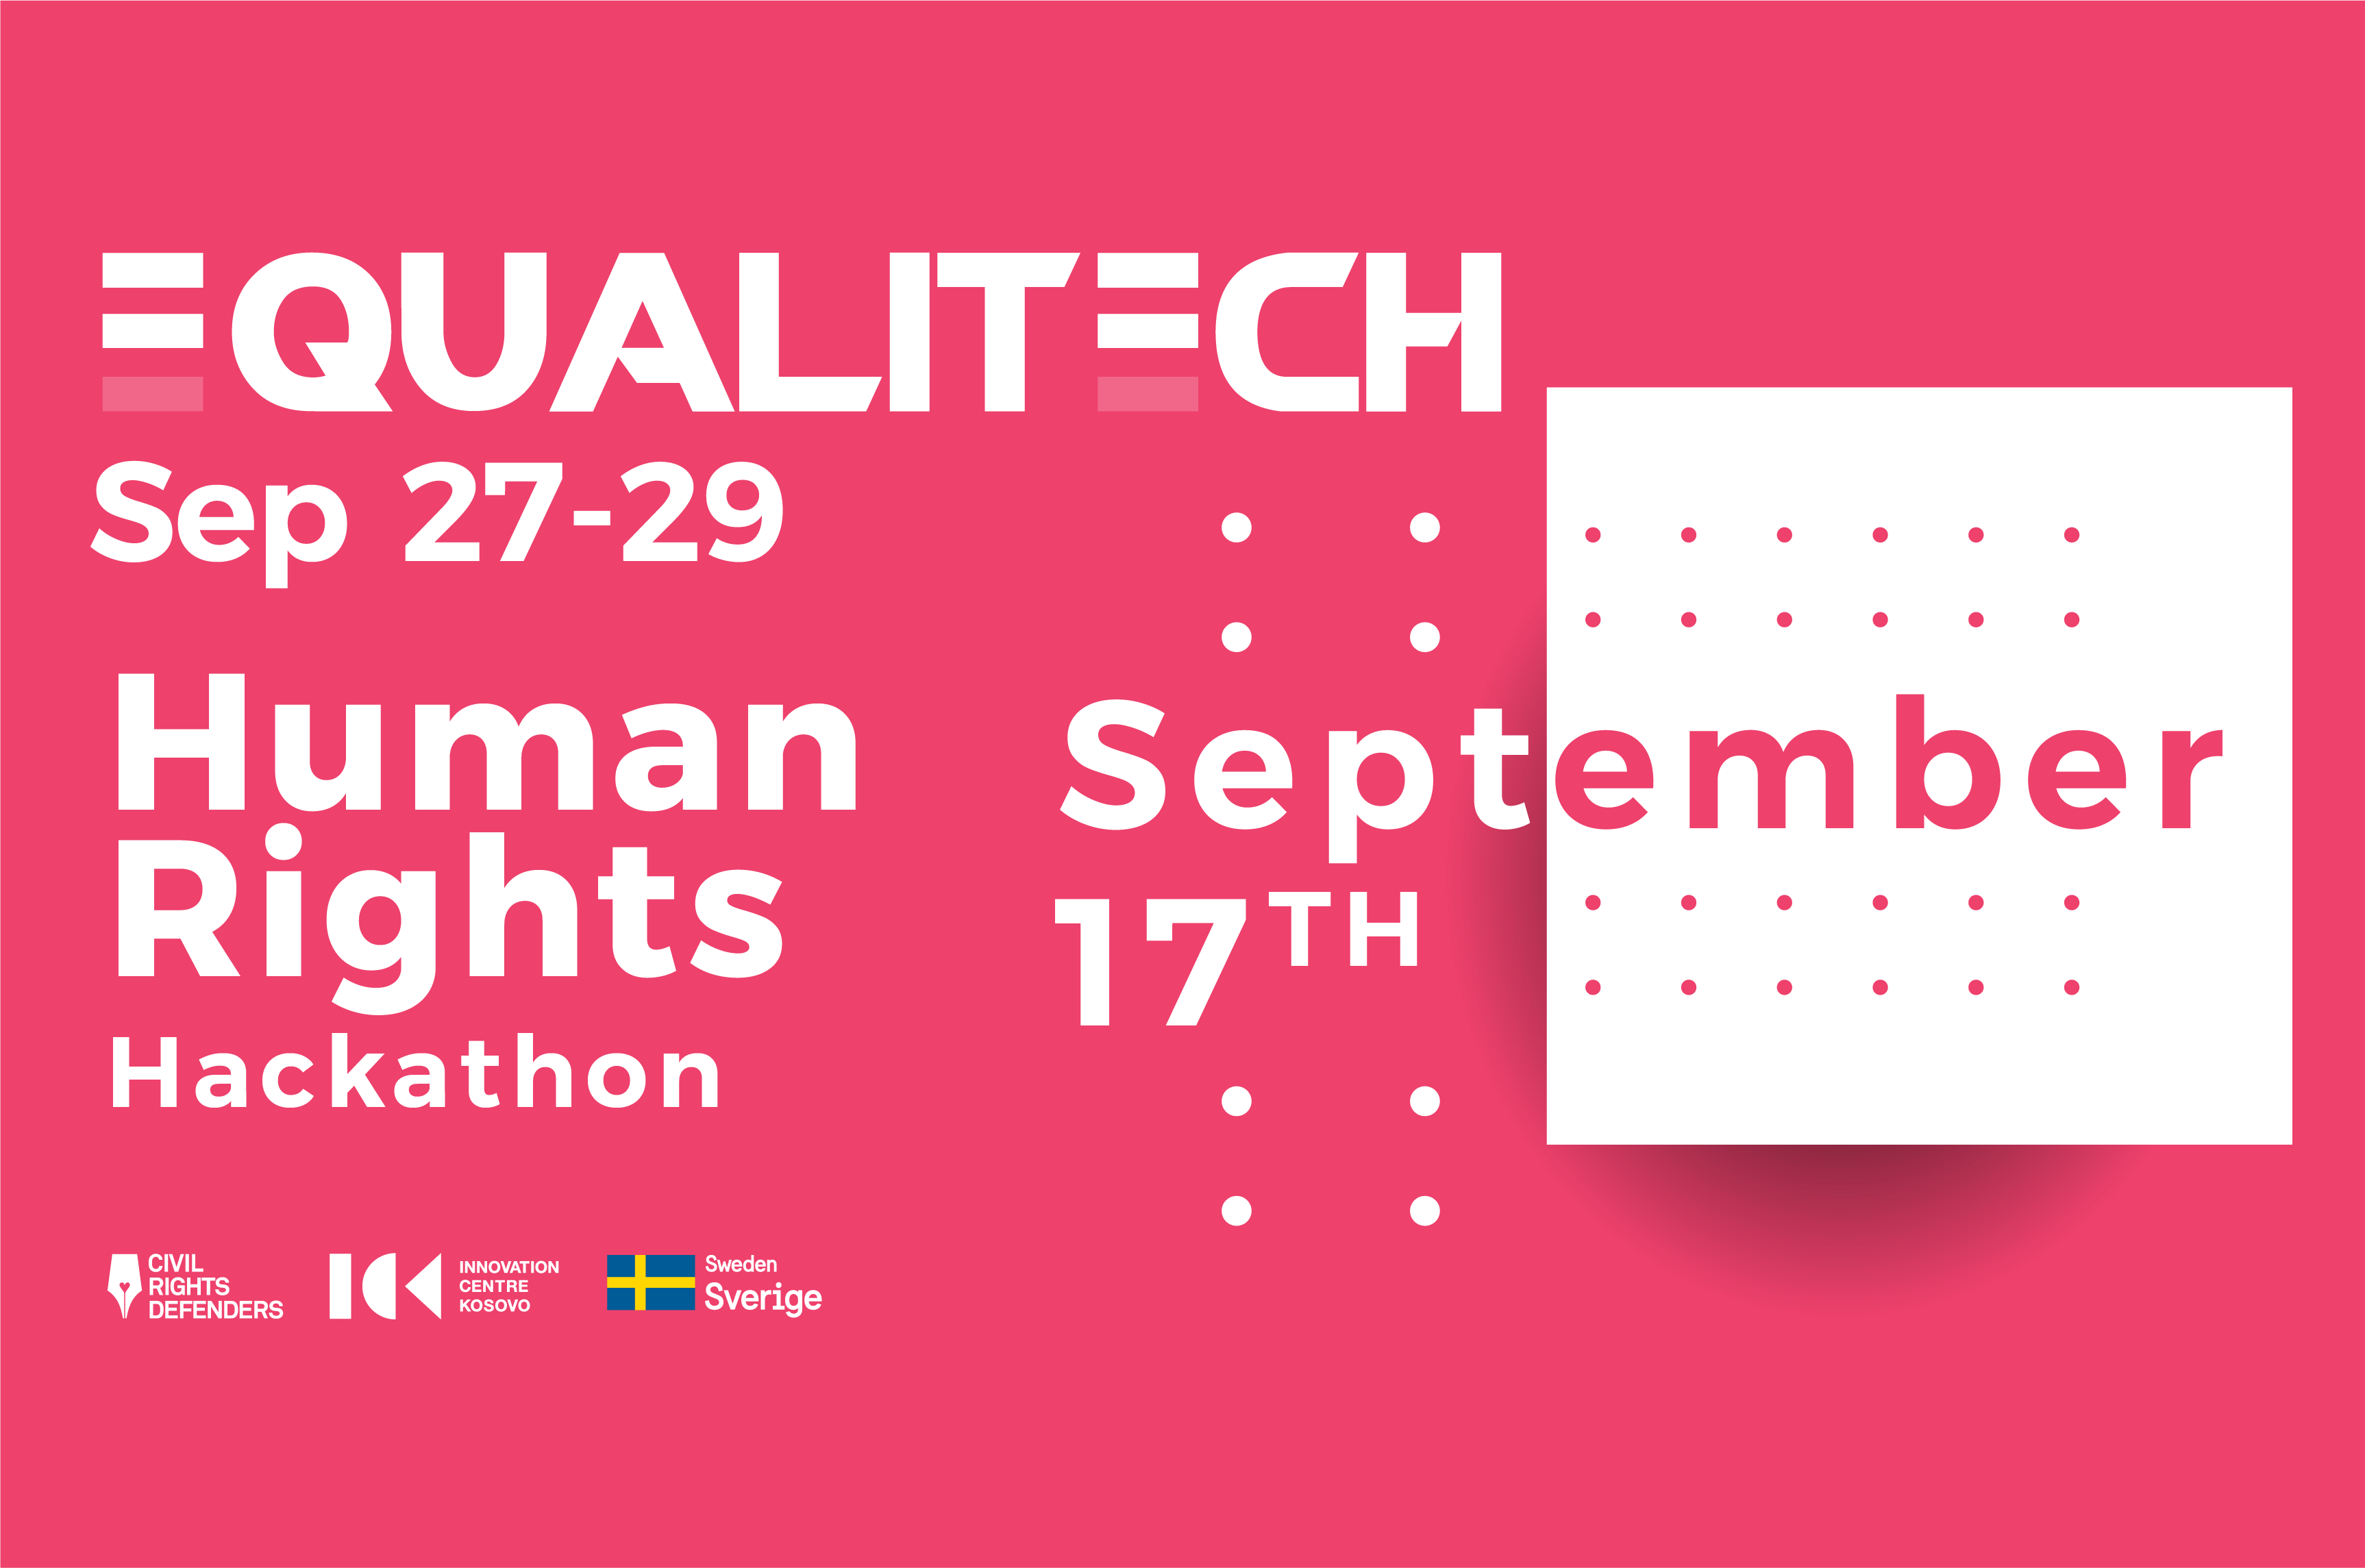 Civil Rights Defenders & ICK present 'EqualiTECH 2019′ human rights hackathon